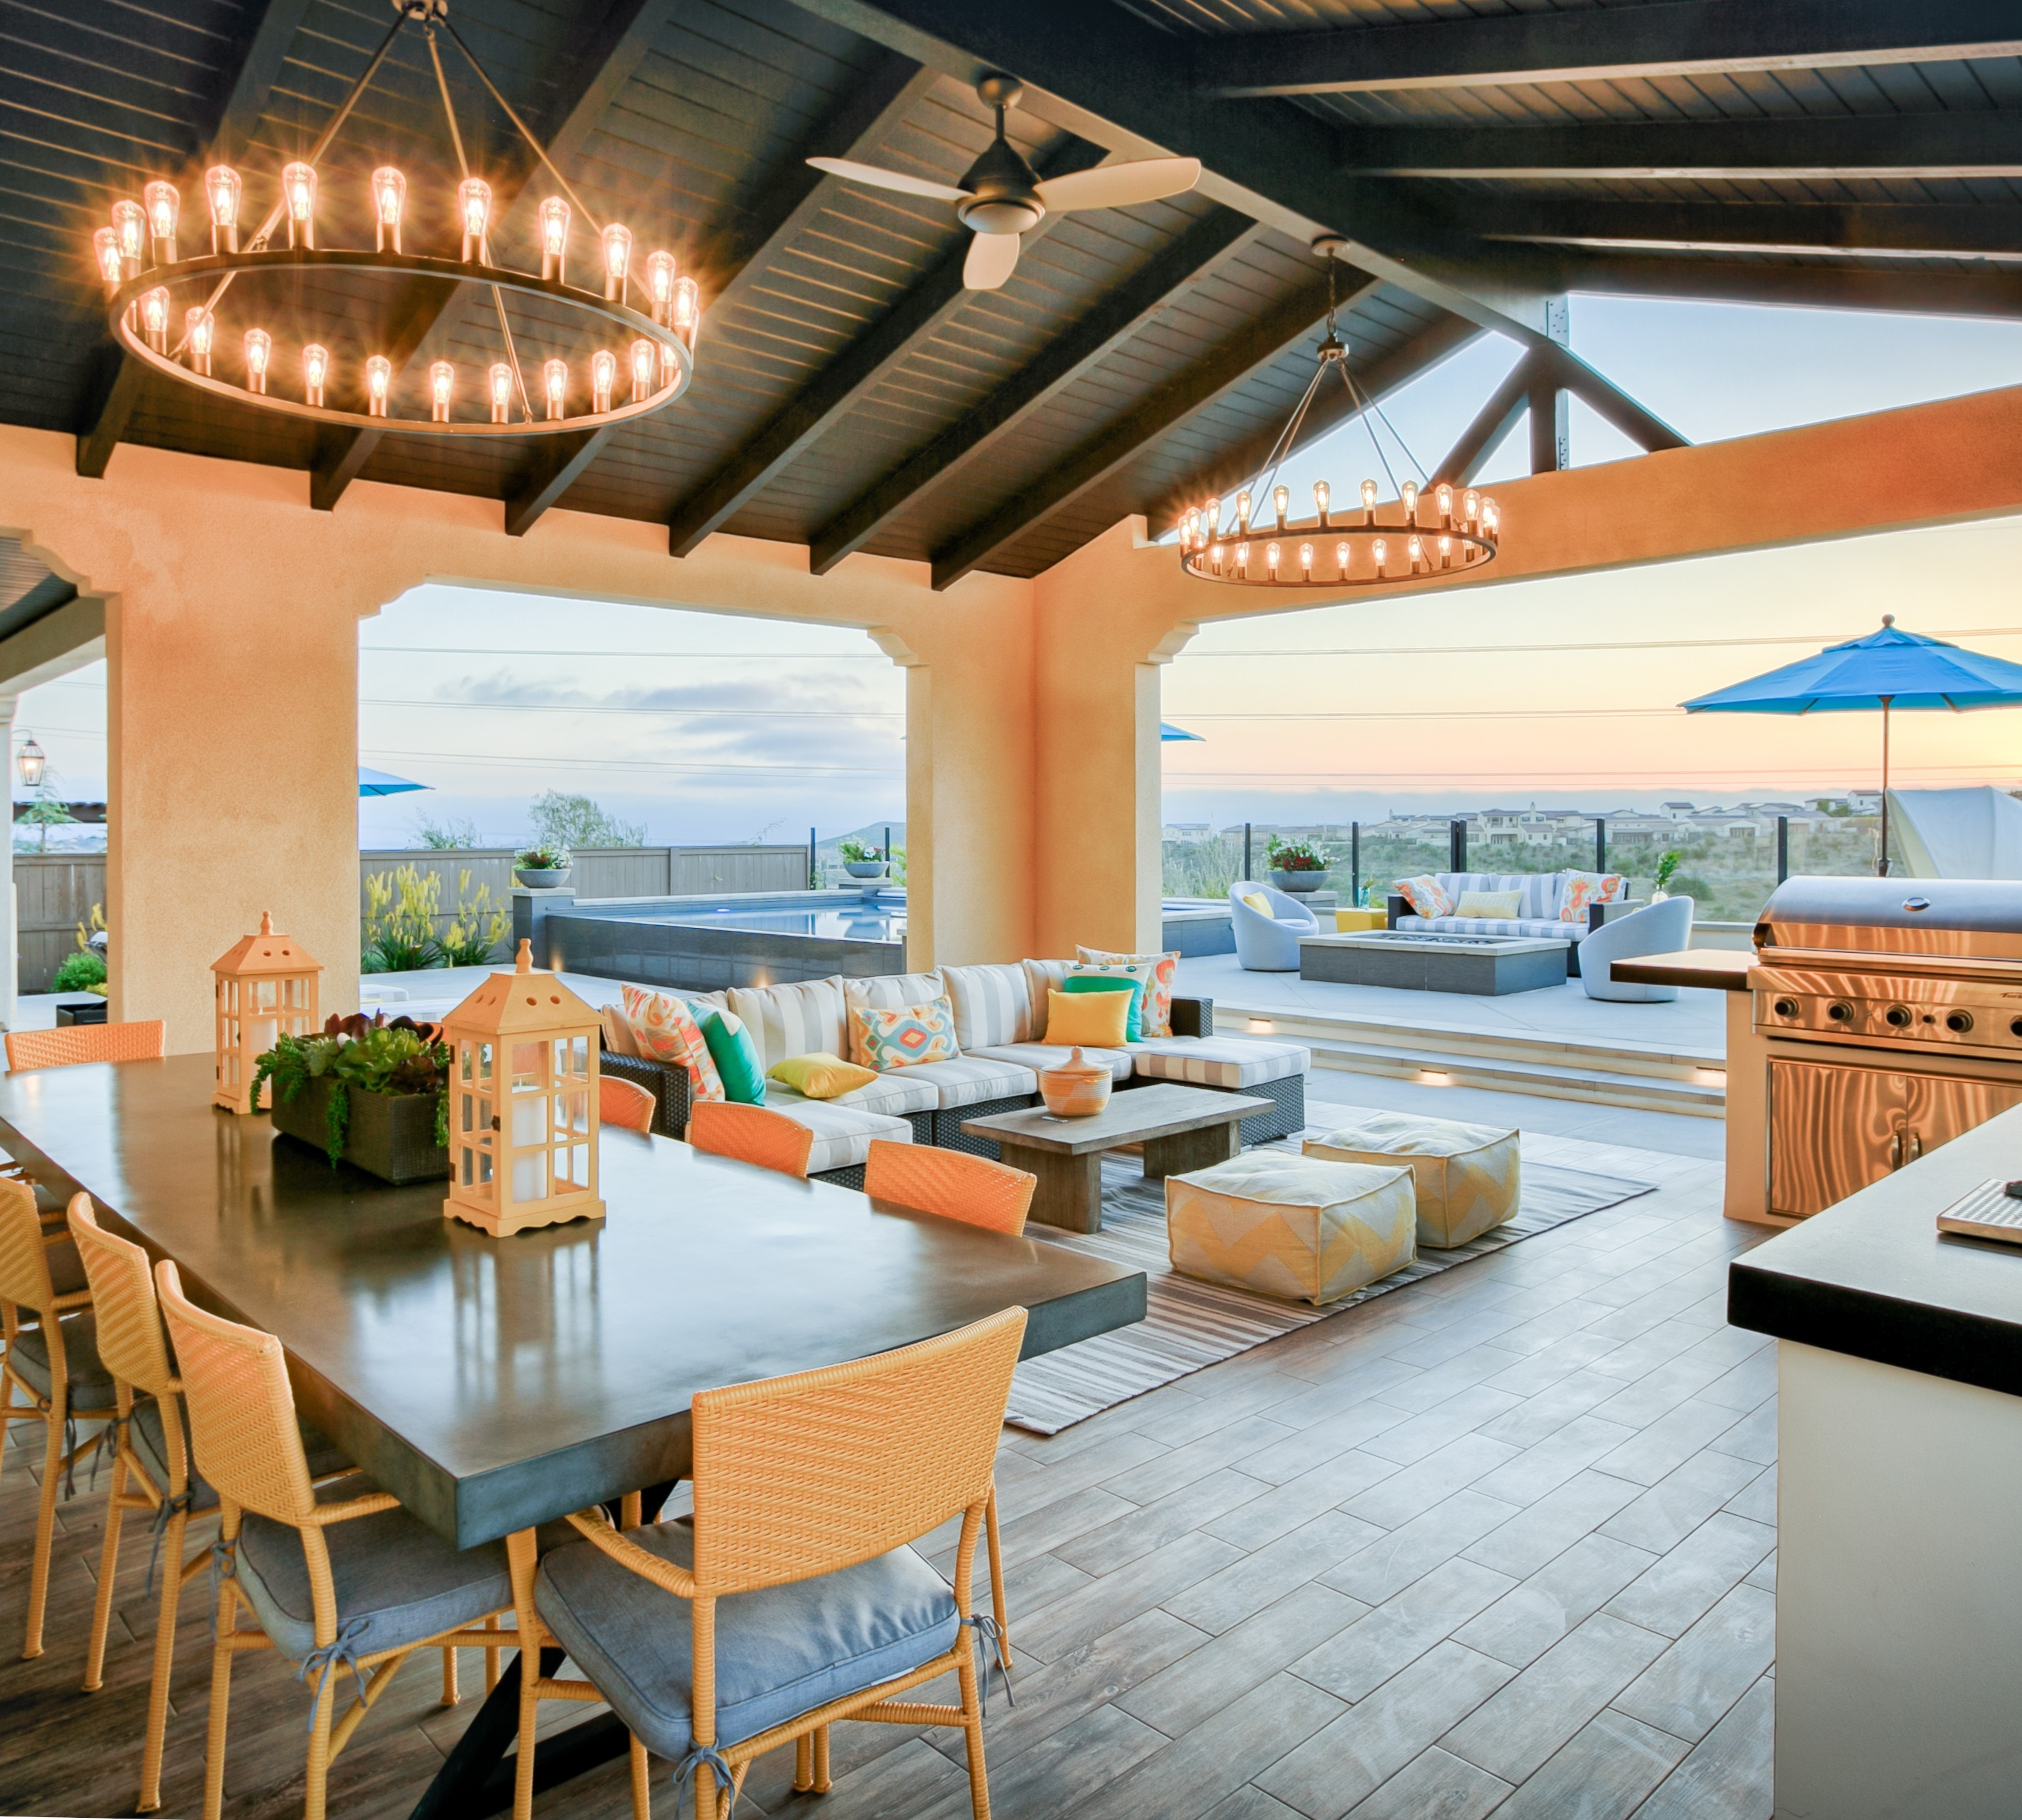 Del Sur - Outdoor Living in Style